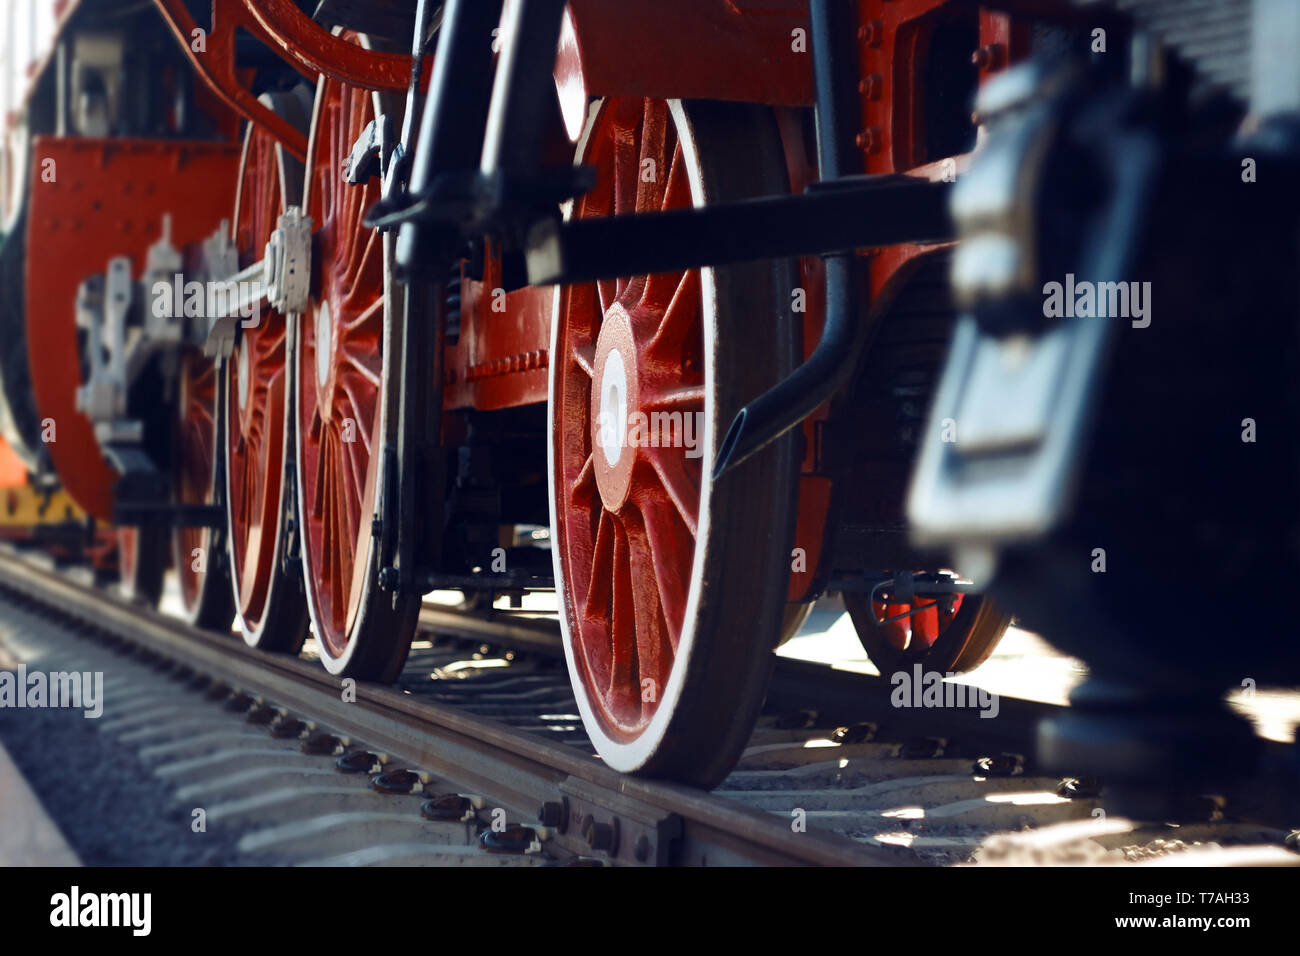 The red wheels of an old vintage steam locomotive, actively used in the 20th century, and now an exhibition model in the Museum. Stock Photo